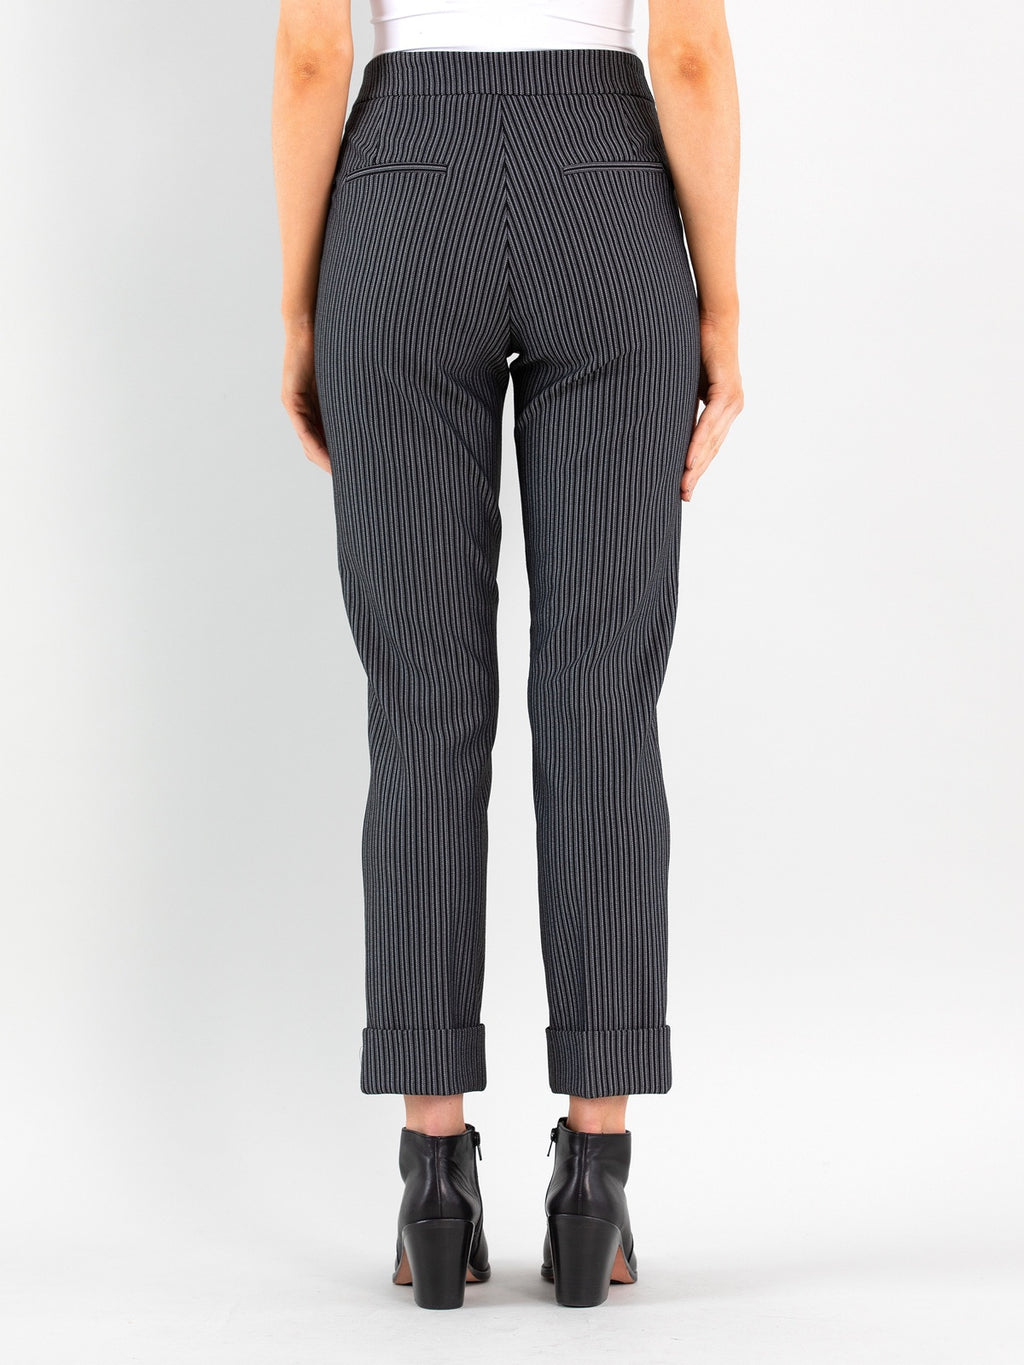 Marco Polo Stripe Dress Pant | Buy Online at Weekends